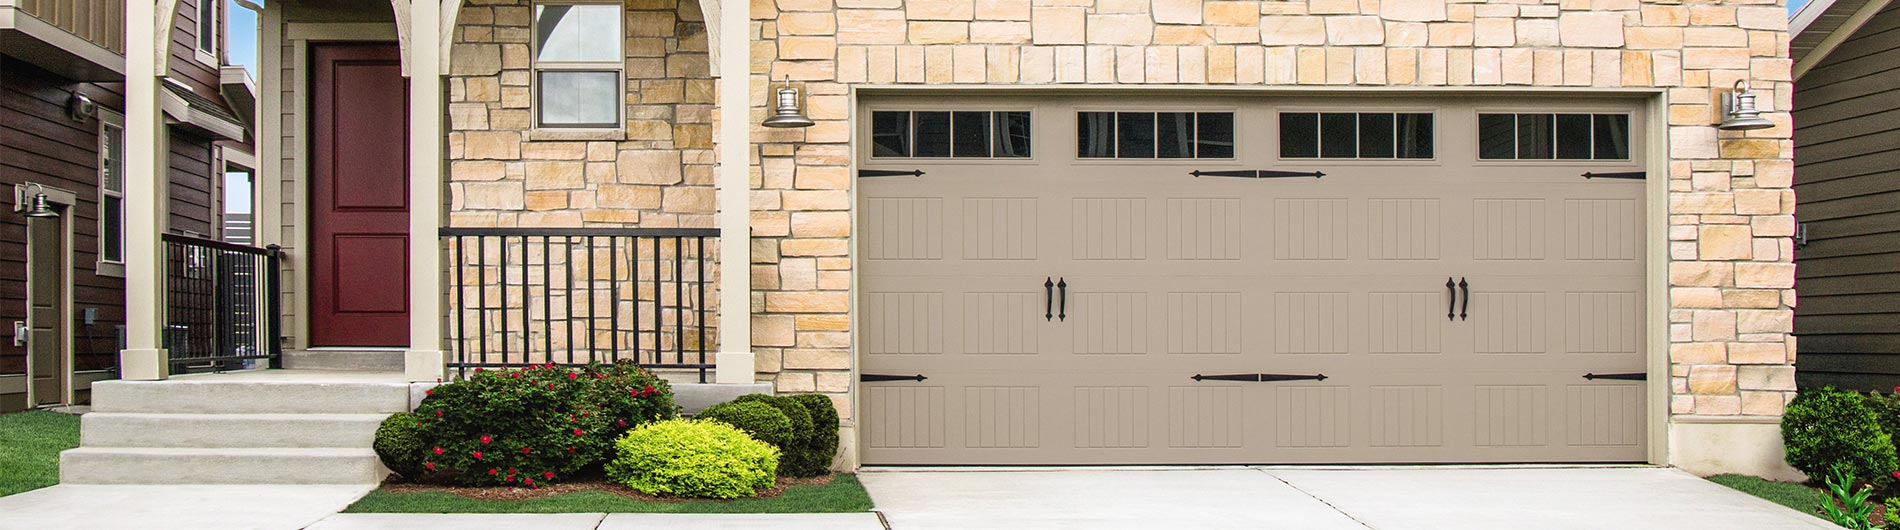 model-9100-Steel-Garage-Door-Sonoma-Taupe-Stockbridge